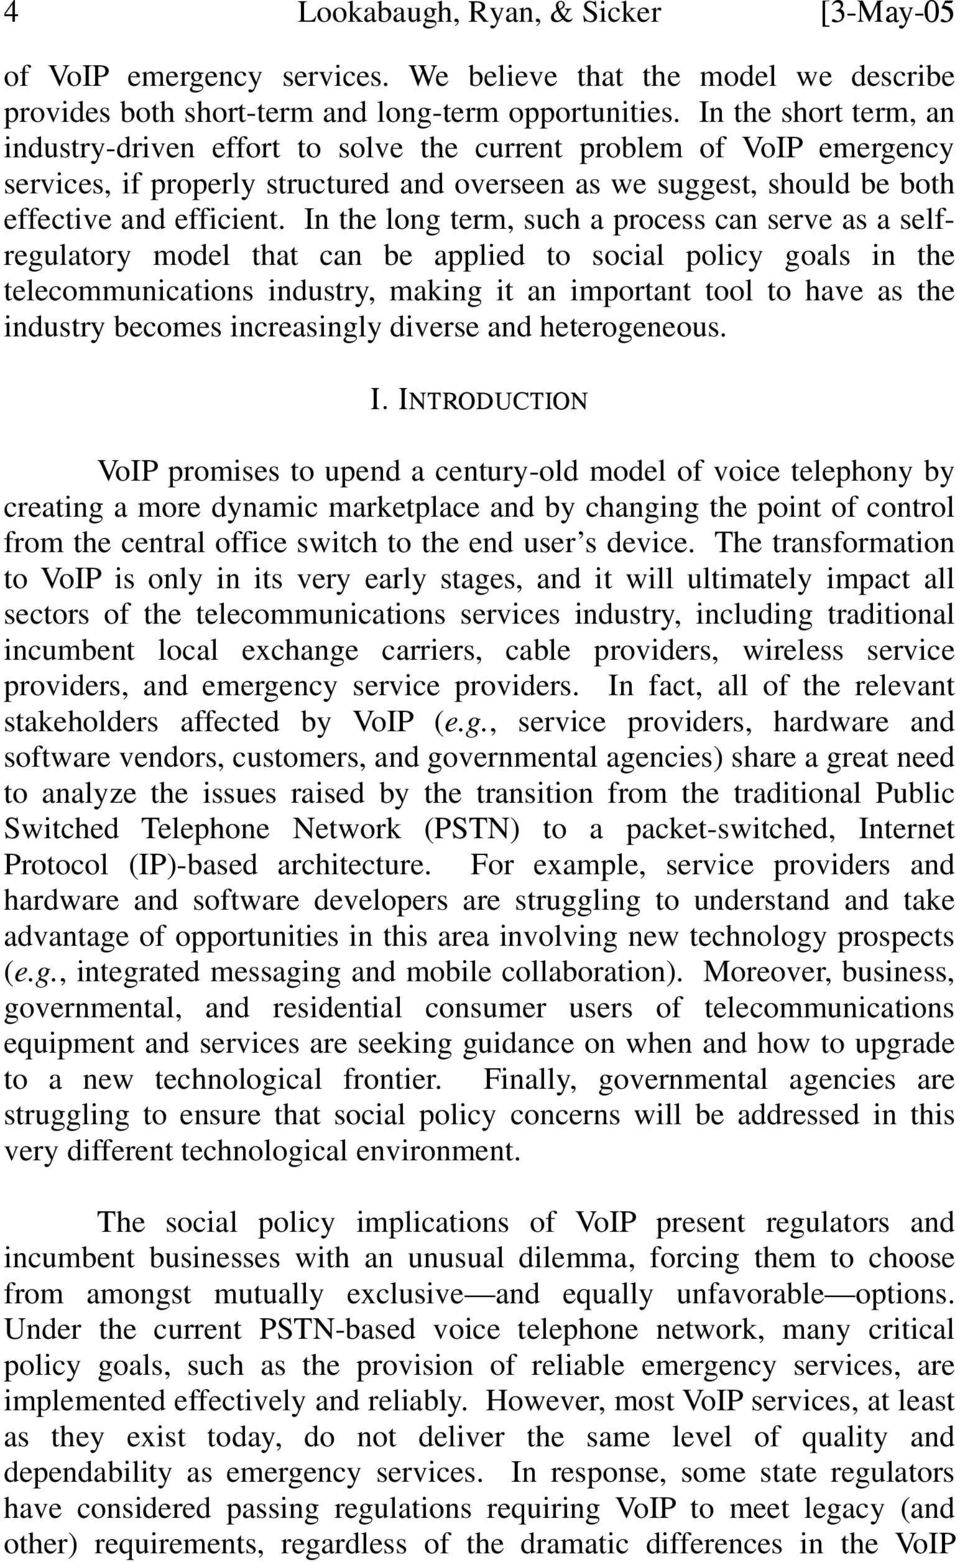 In the long term, such a process can serve as a selfregulatory model that can be applied to social policy goals in the telecommunications industry, making it an important tool to have as the industry